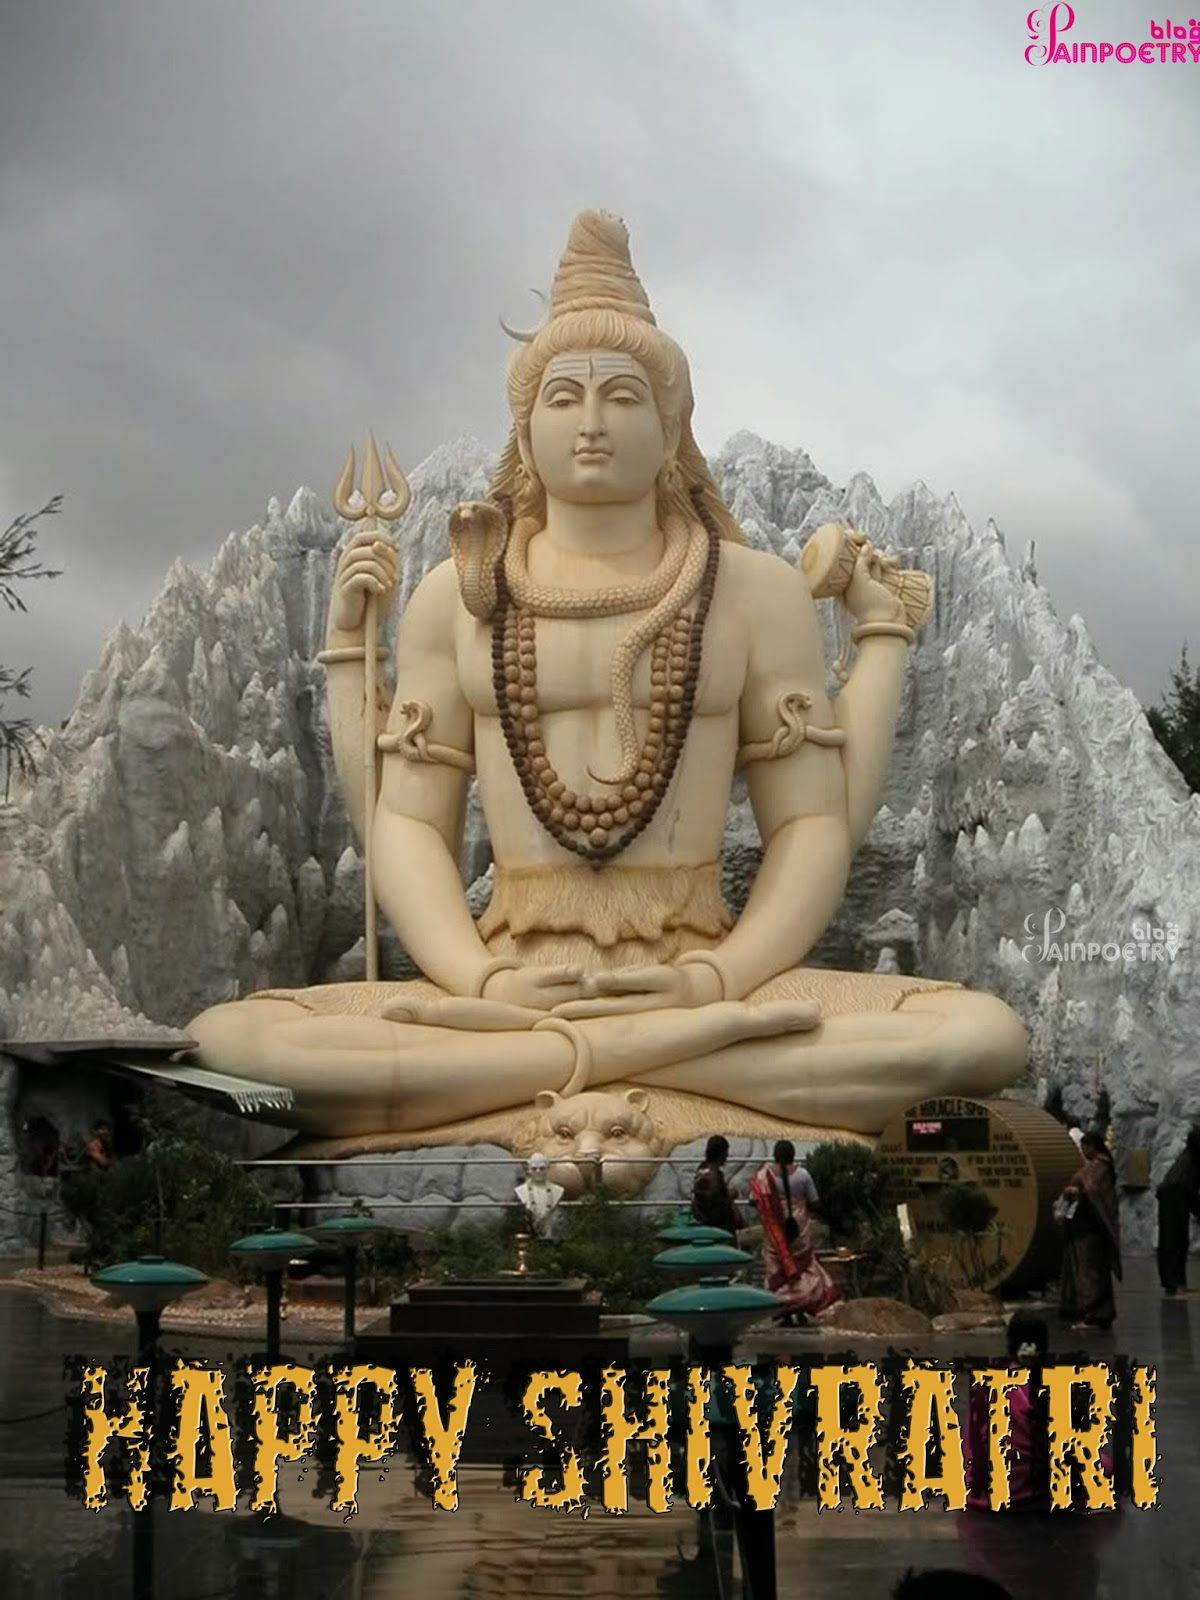 Happy-Shivratri-Wishes-Wallpaper-Image-Photo-Wallpaper-HD